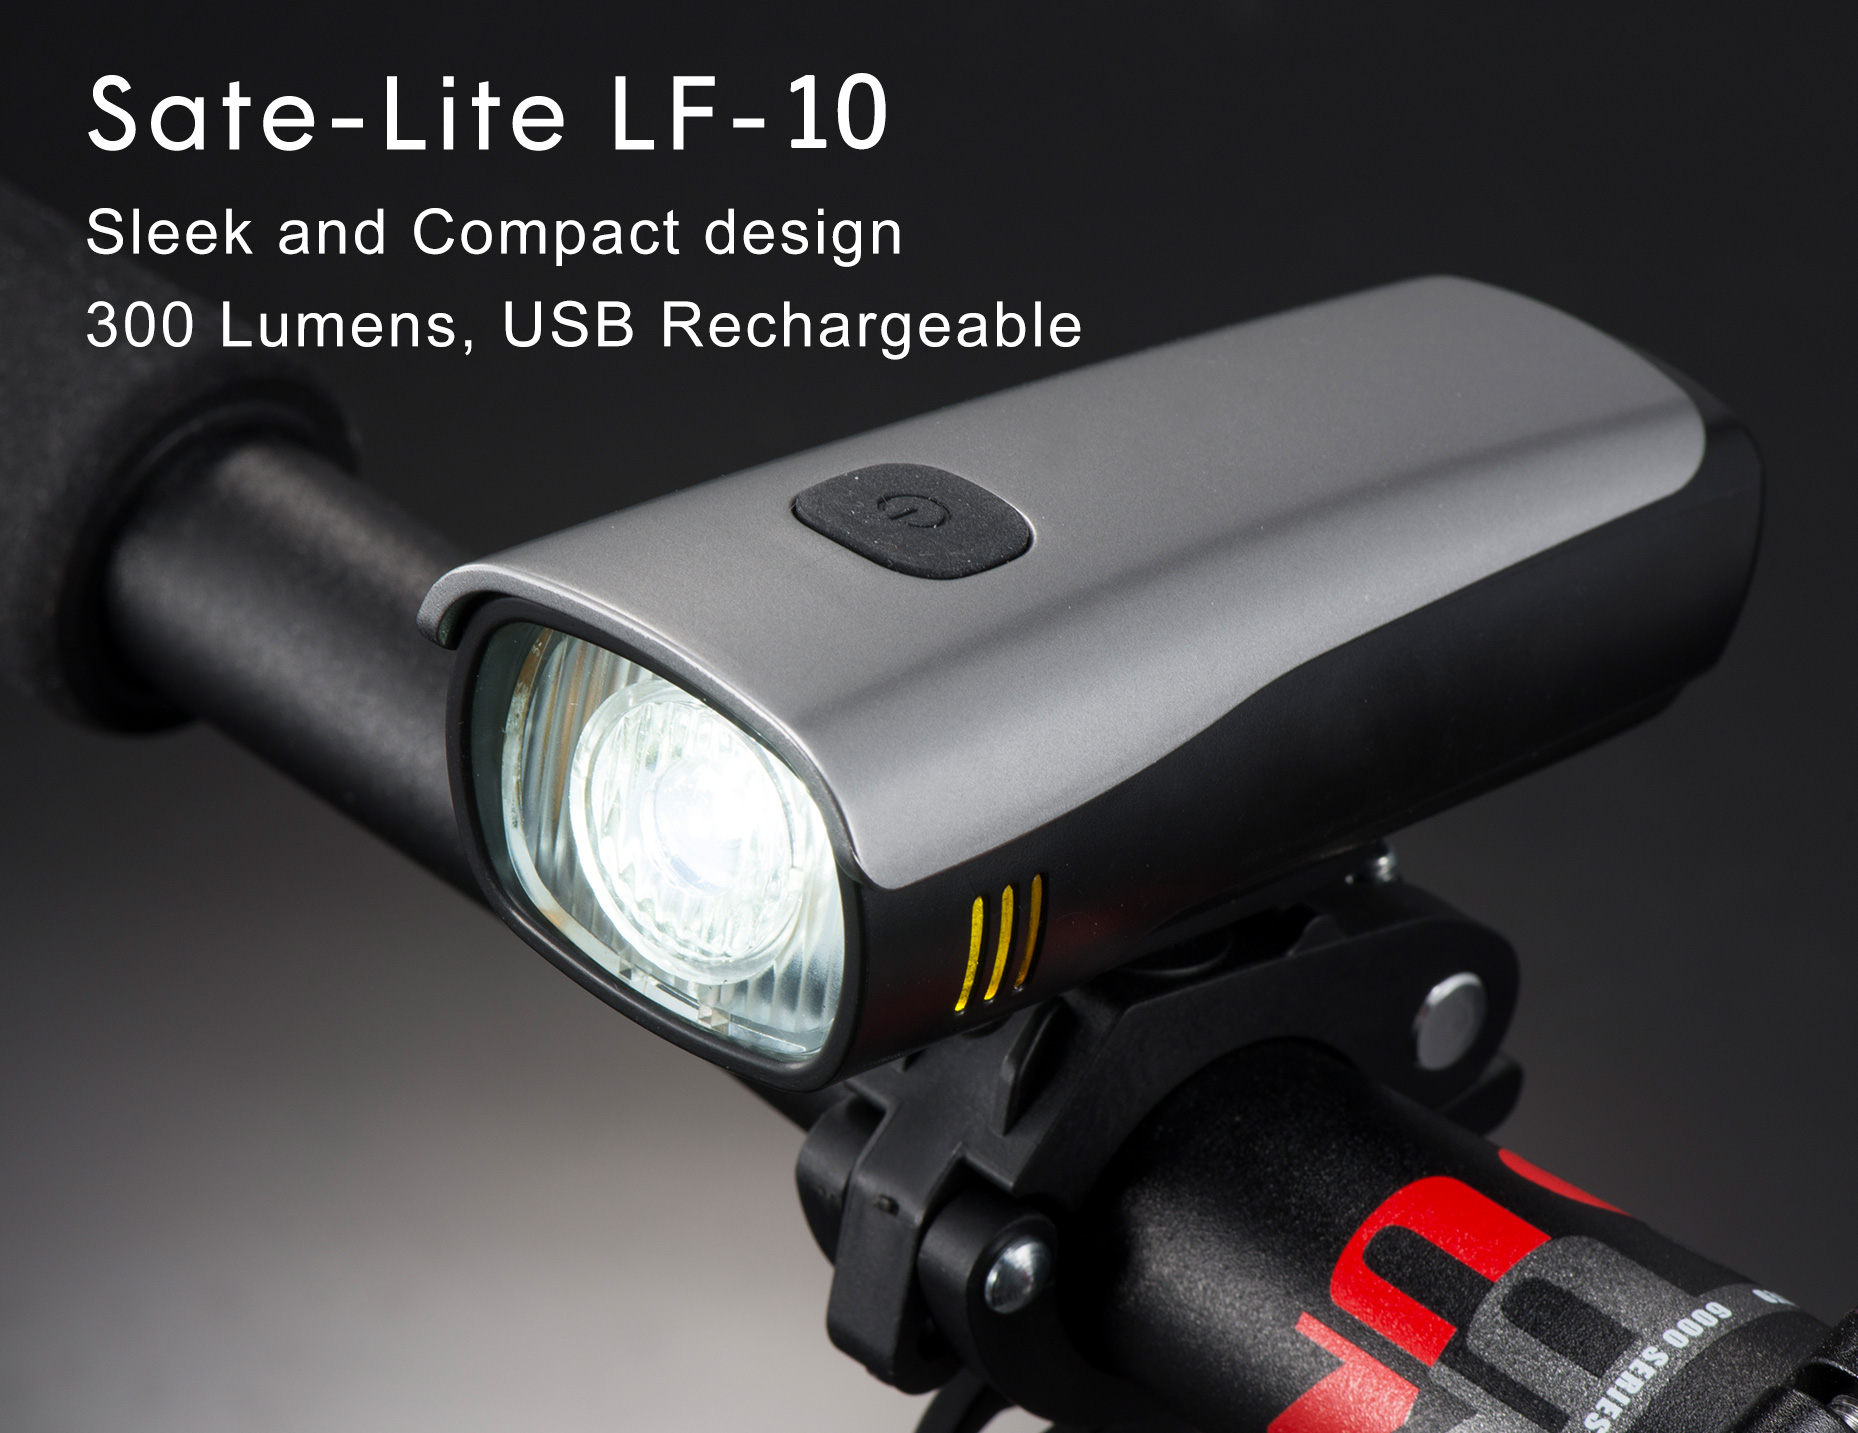 2018 Sate-Lite StVZO approved Bicycle Headlight USB Rechargeable Bike Light LF-10